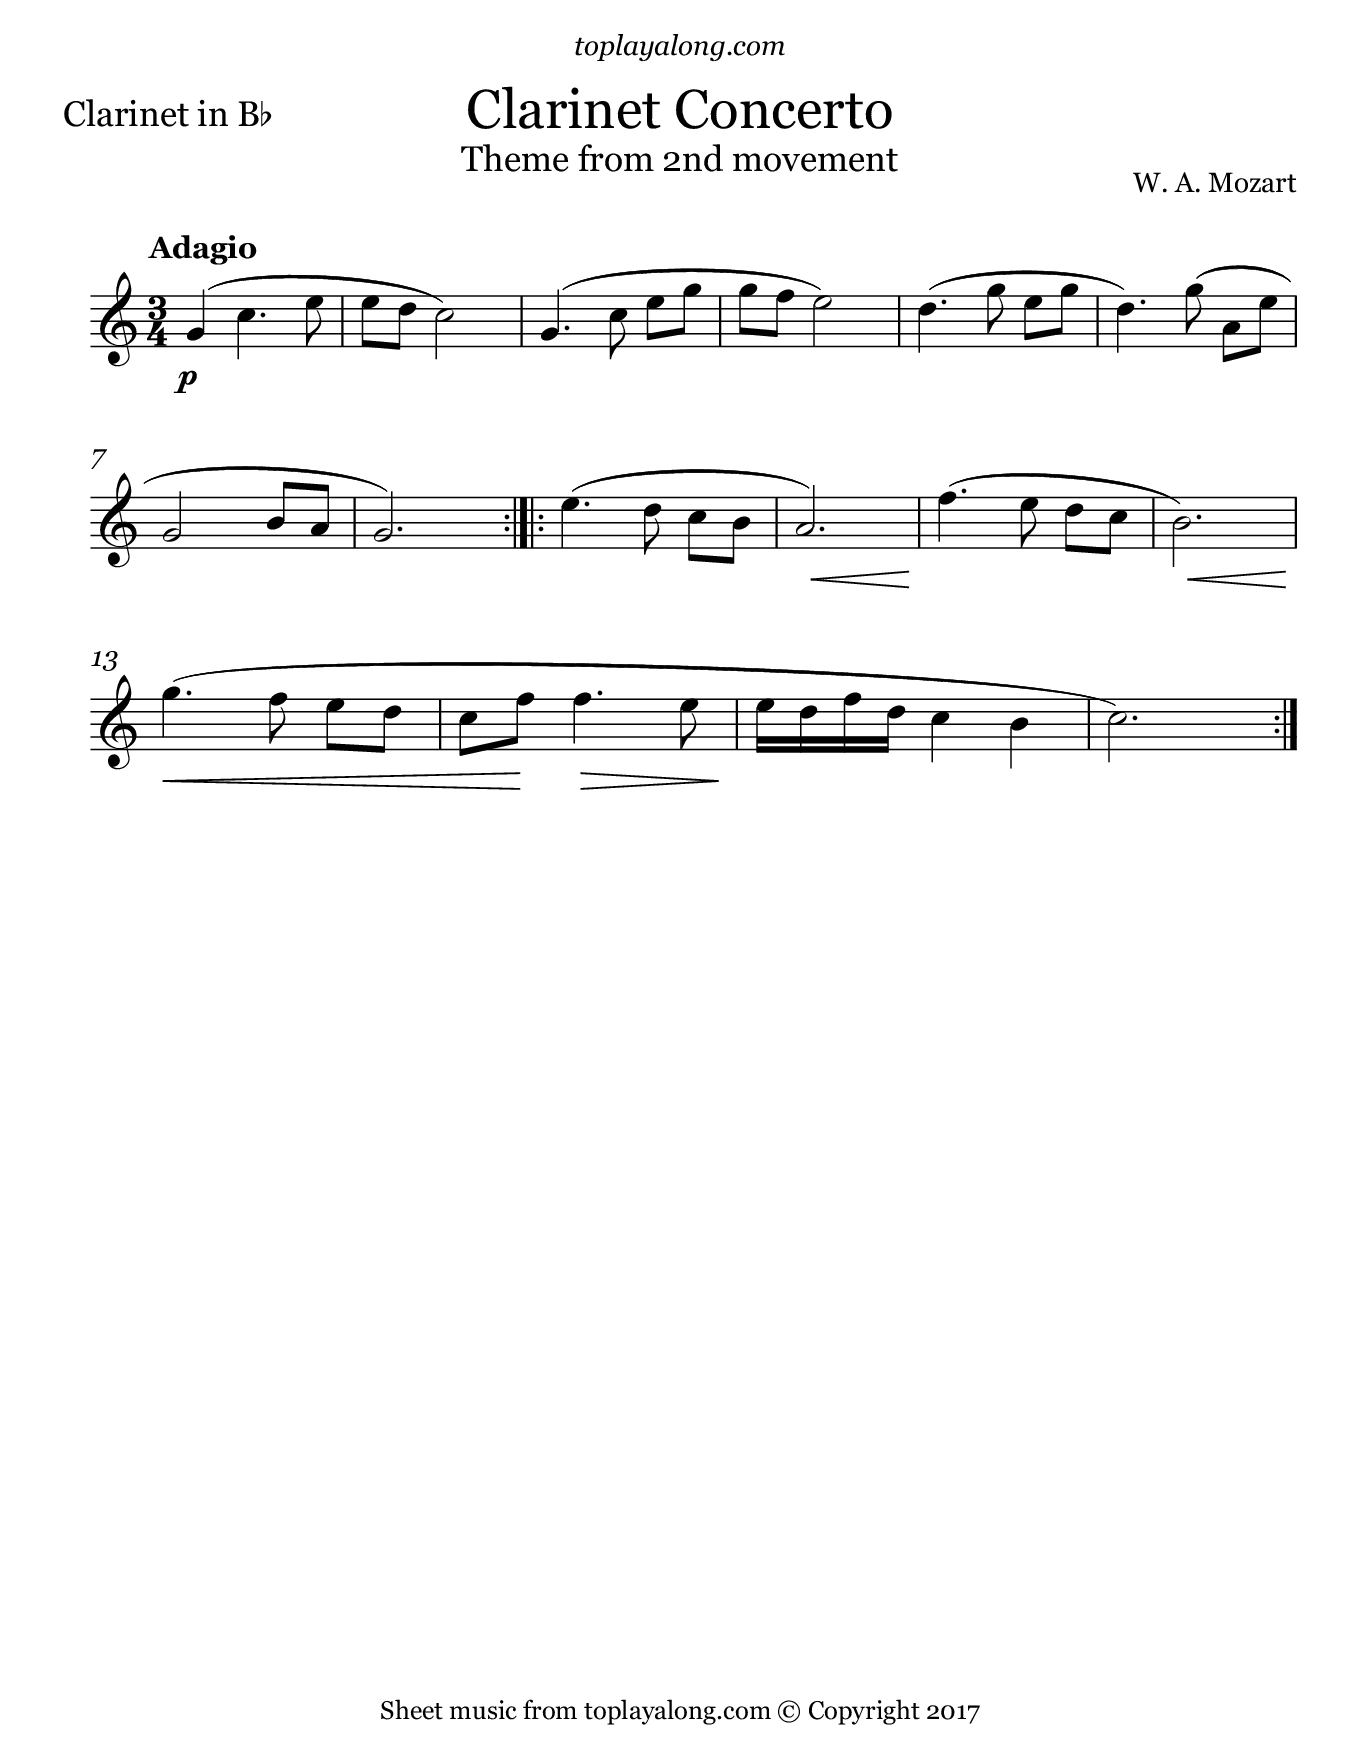 Clarinet Concerto 2nd mvt. (Theme) by Mozart. Sheet music for Clarinet, page 1.